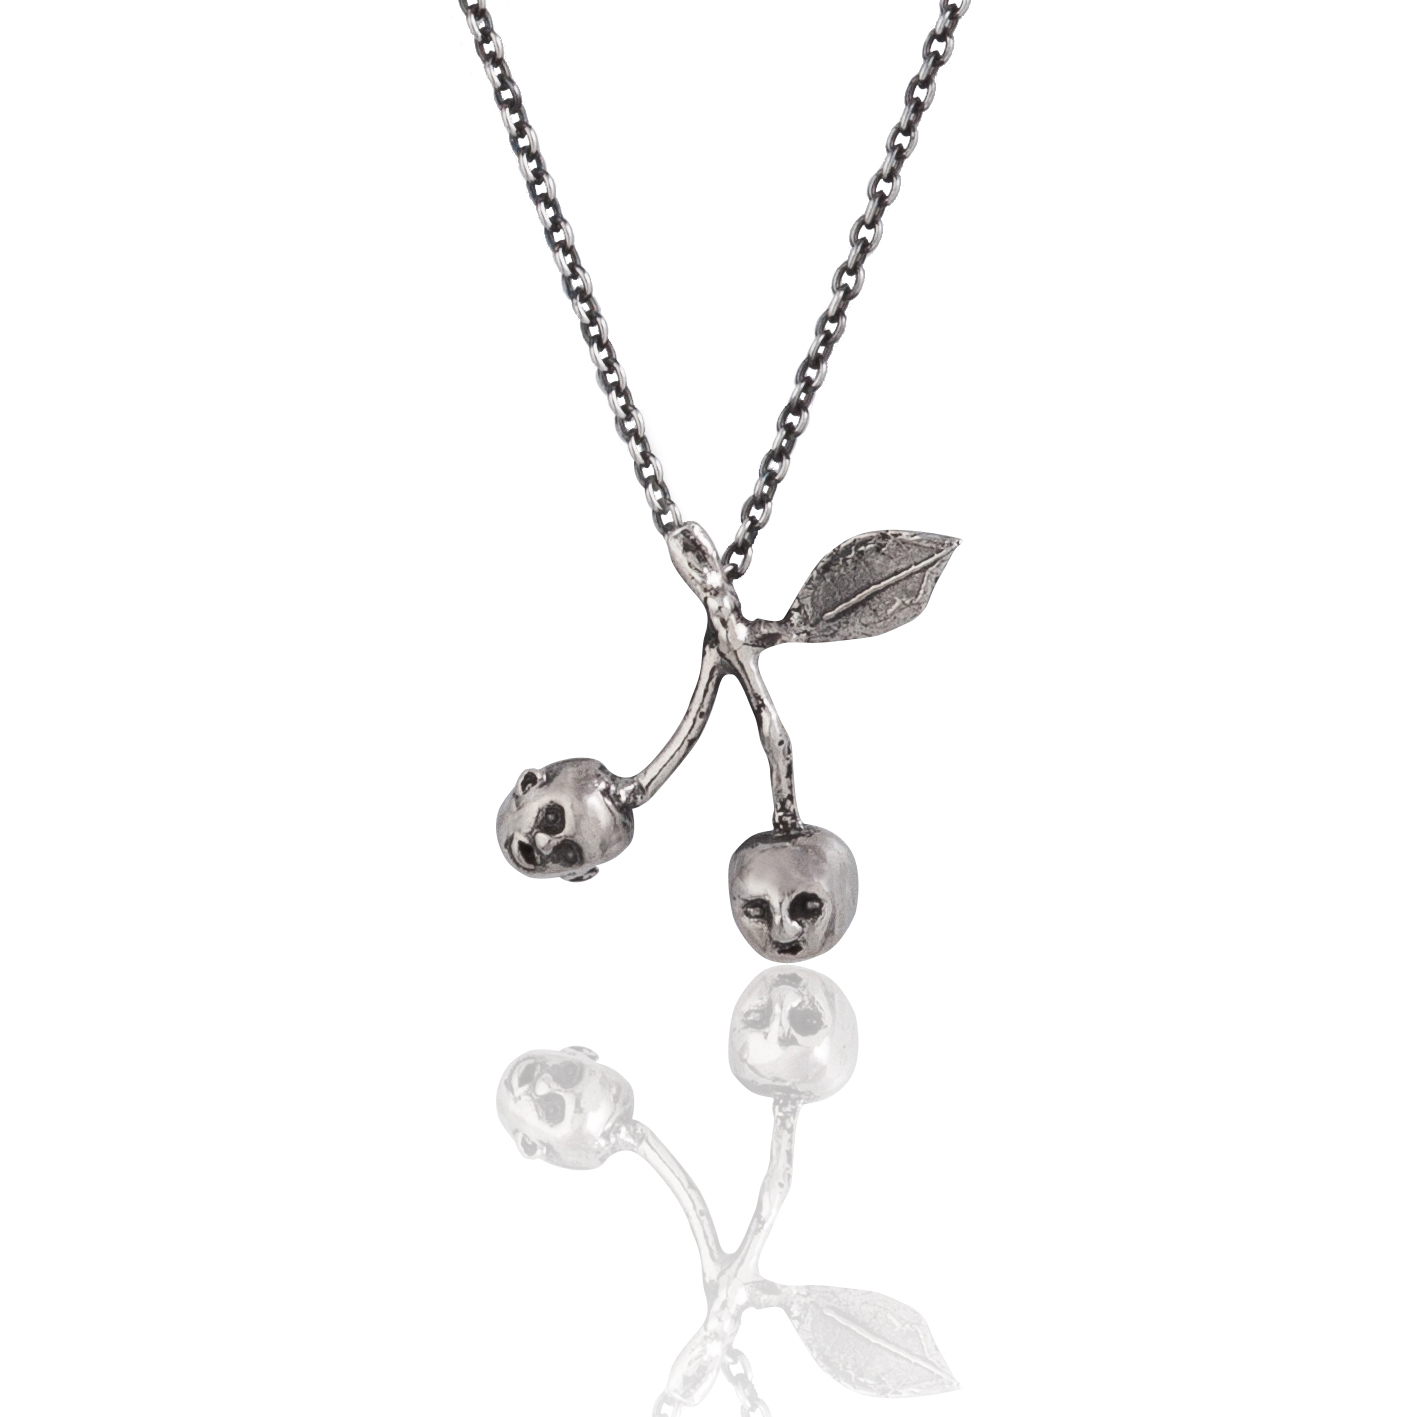 Momocreatura cherry brothers necklace.jpg